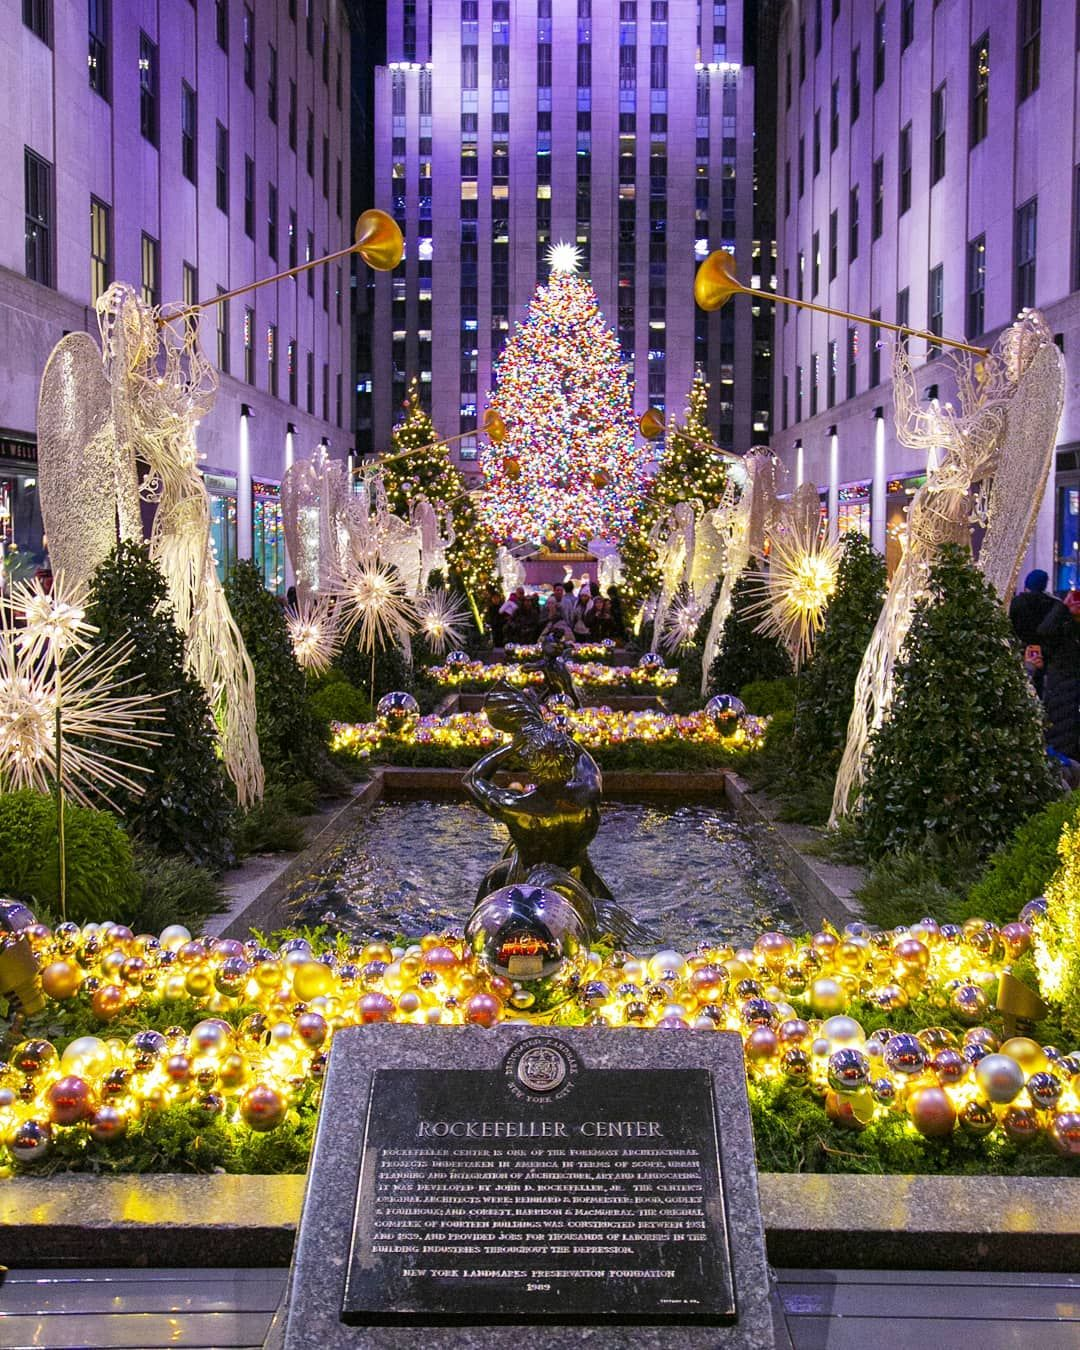 It's no surprise why the #RockefellerChristmasTree is one of the most popular #nyc🎄 #holidaydestinations. The stunning 72 foot #christmastree🎄 lights up #30rock, the #rockefellerrink, and is located just across from #saksfifthavenue. This year the whole #RockefellerCenter is decorated in an epic #christmasdisplay  #holidayspirit🎄 #christmasinnewyork #christmaslights🎄 #christmasnyc #christmas🎅